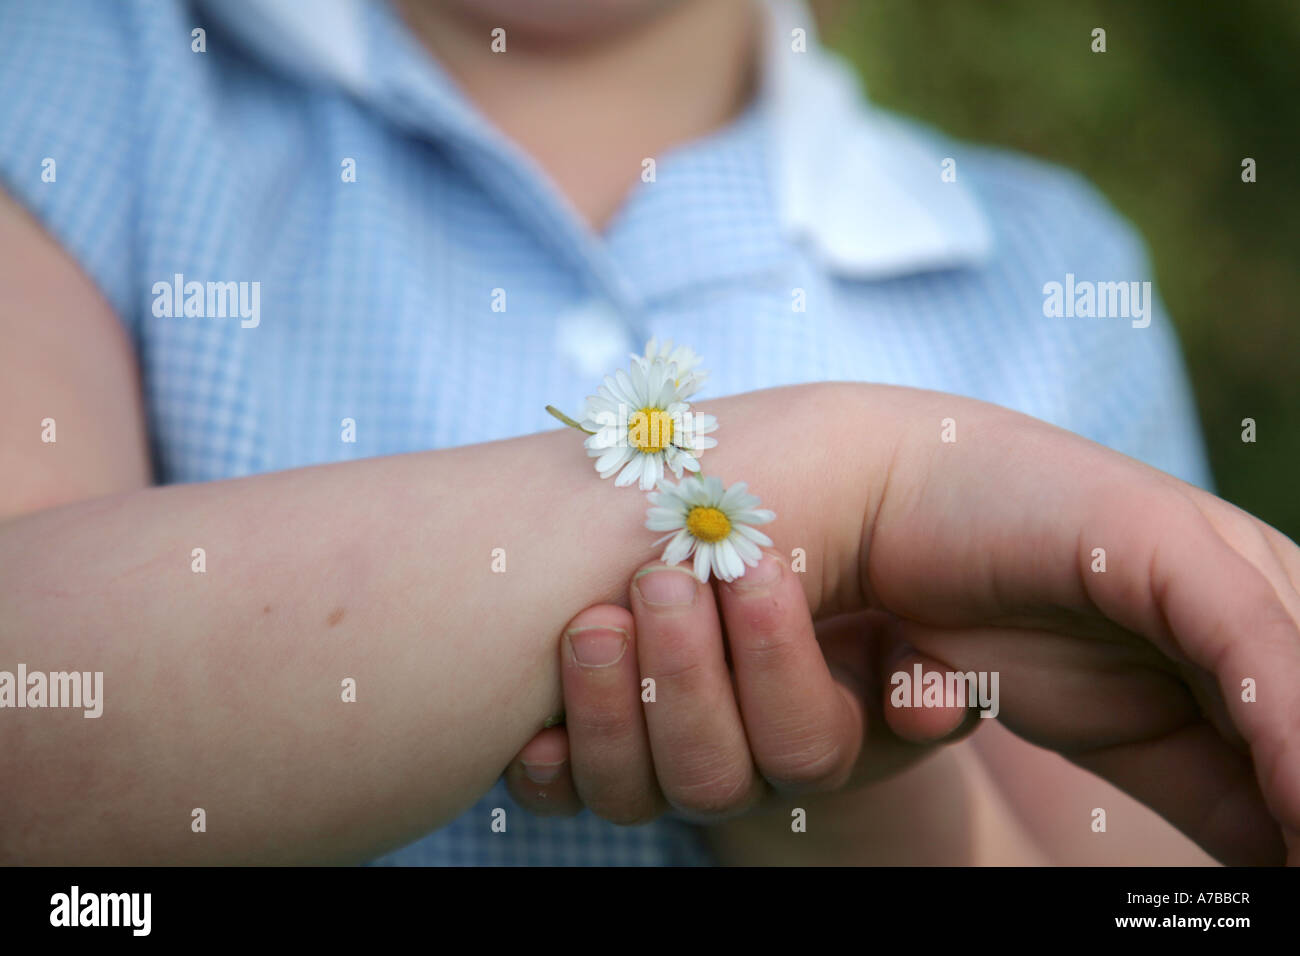 Daisy-chain Stockbild